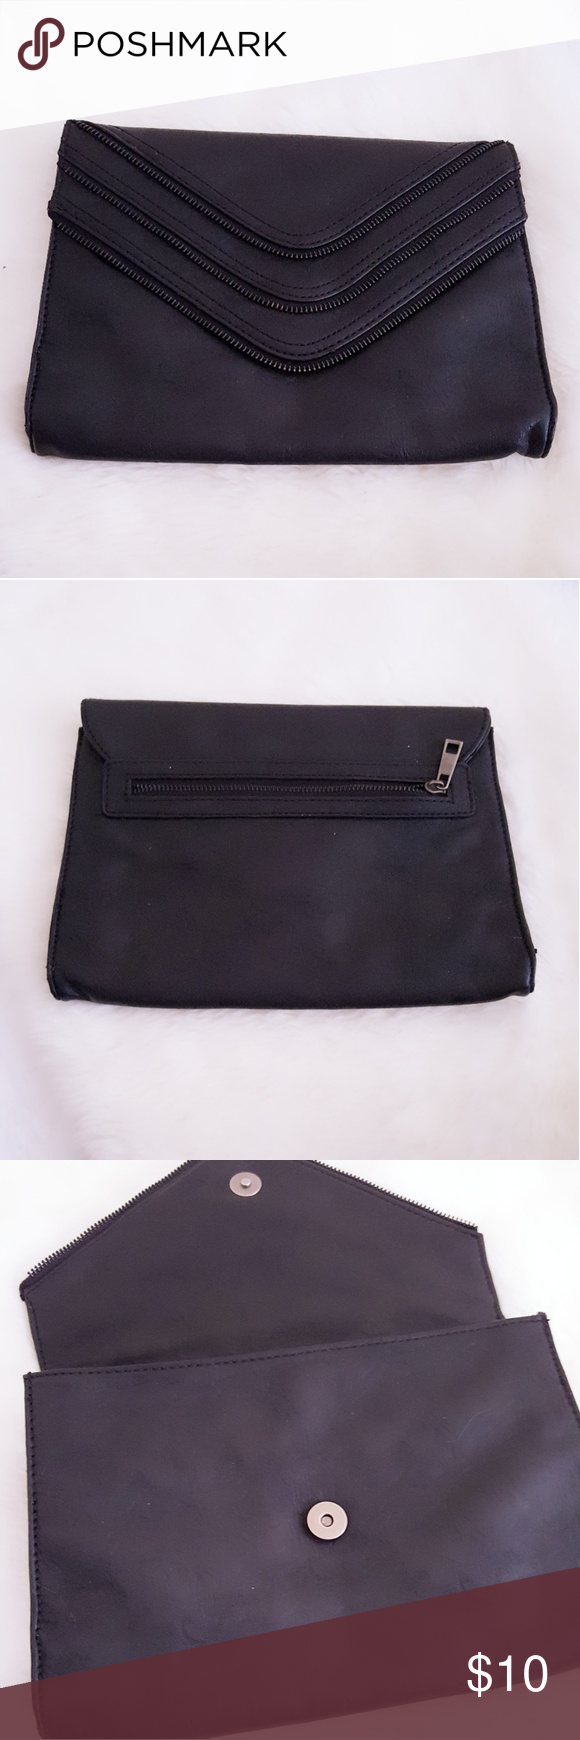 Black Clutch Pre owned  Fair Condition   * Please message me for all inquiries. * Same or next day shipping.  * All purchase are greatly appreciated. * 10% off Bundle * No Trades Bags Clutches & Wristlets